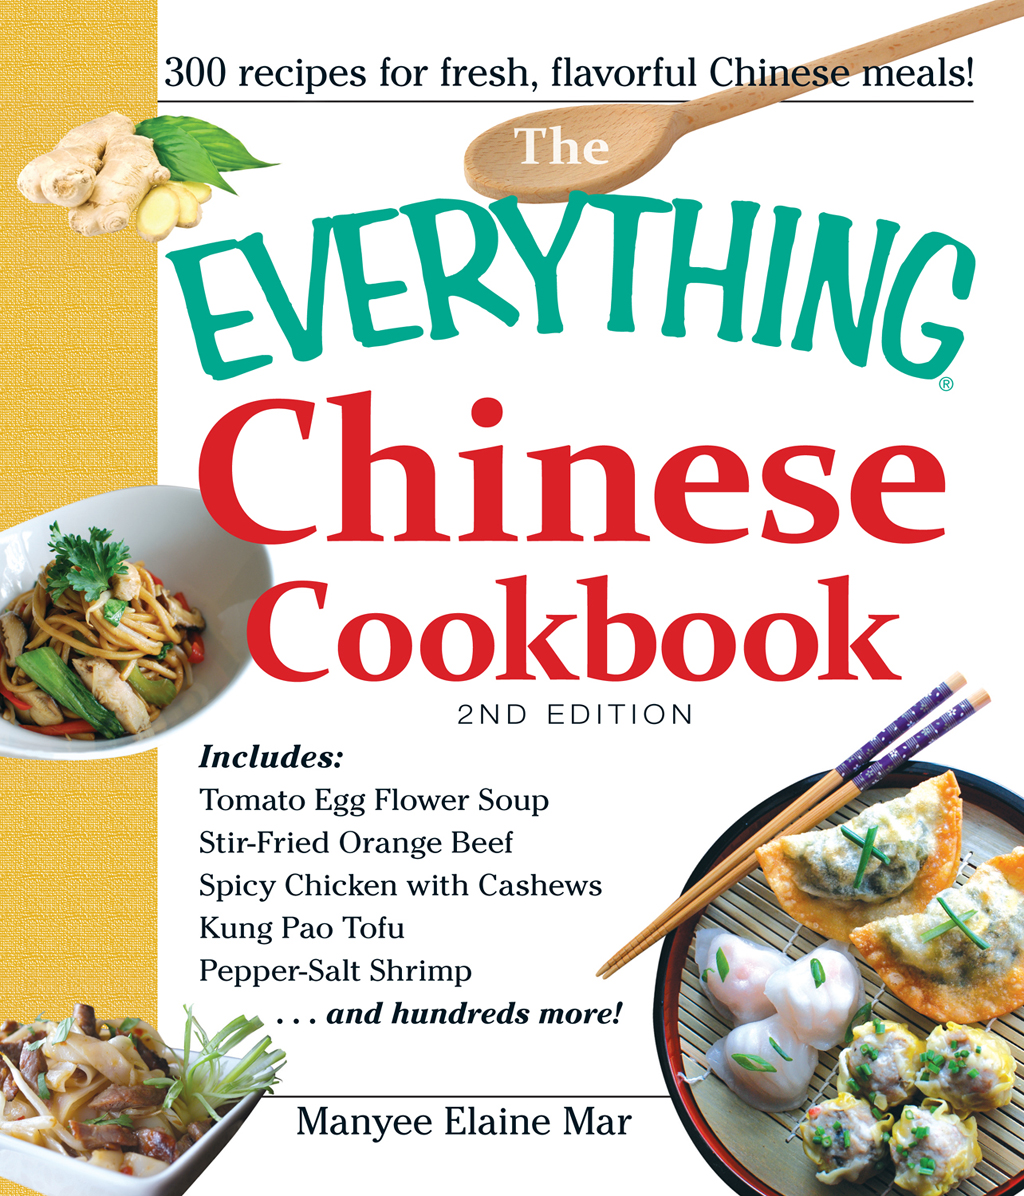 The Everything Chinese Cookbook Includes Tomato Egg Flower Soup,  Stir-Fried Orange Beef,  Spicy Chicken with Cashews,  Kung Pao Tofu,  Pepper-Salt Shrimp